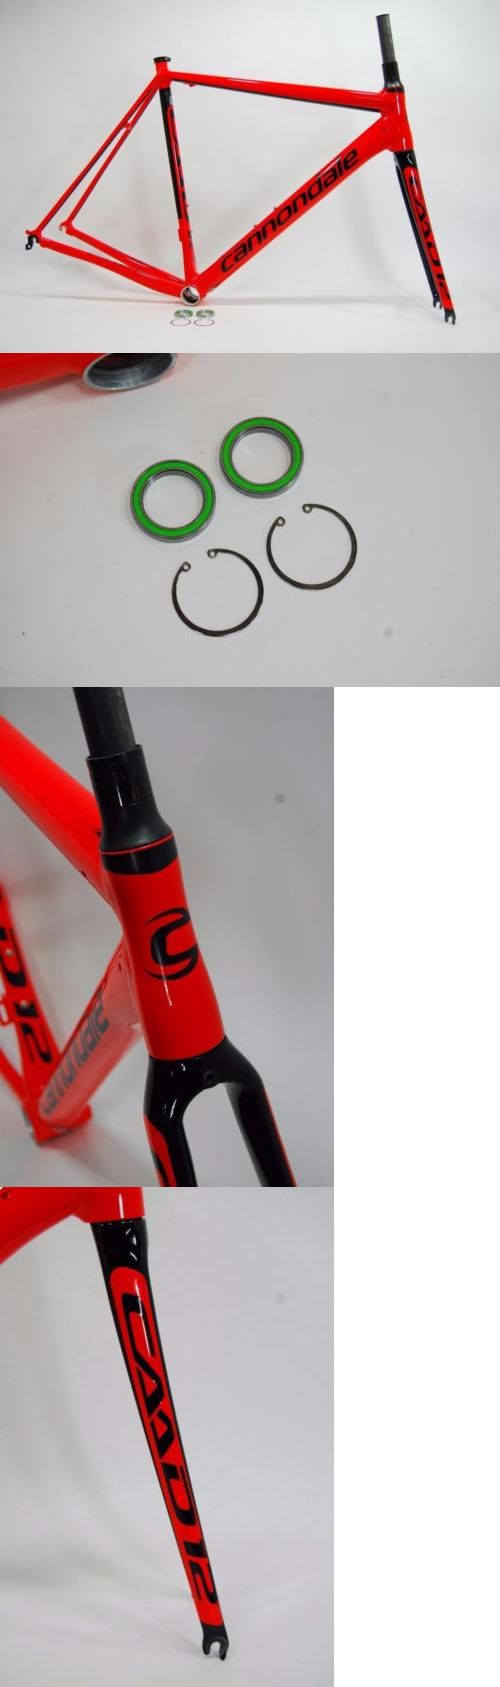 Bicycle Frames 22679: 2016 Cannondale Caad12 Alloy Road Bike Frame 54Cm Bb30 Di2 New -> BUY IT NOW ONLY: $850 on eBay!